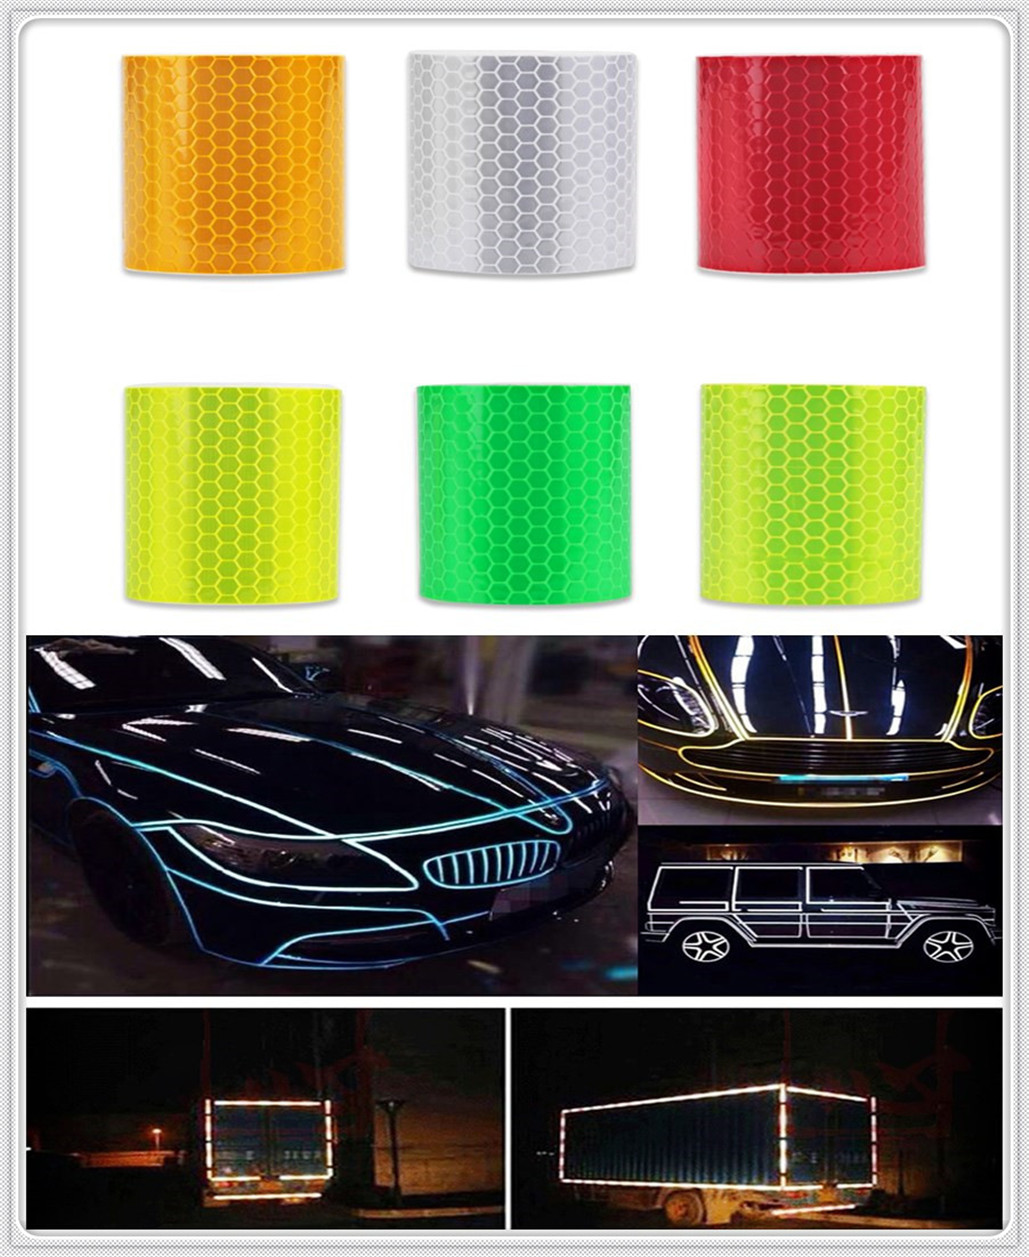 Car Accessories Reflective Sticker Decal Warning Tape Film for Chevrolet Volt SS Chevelle FNR 1970 1967 Impala Chaparral